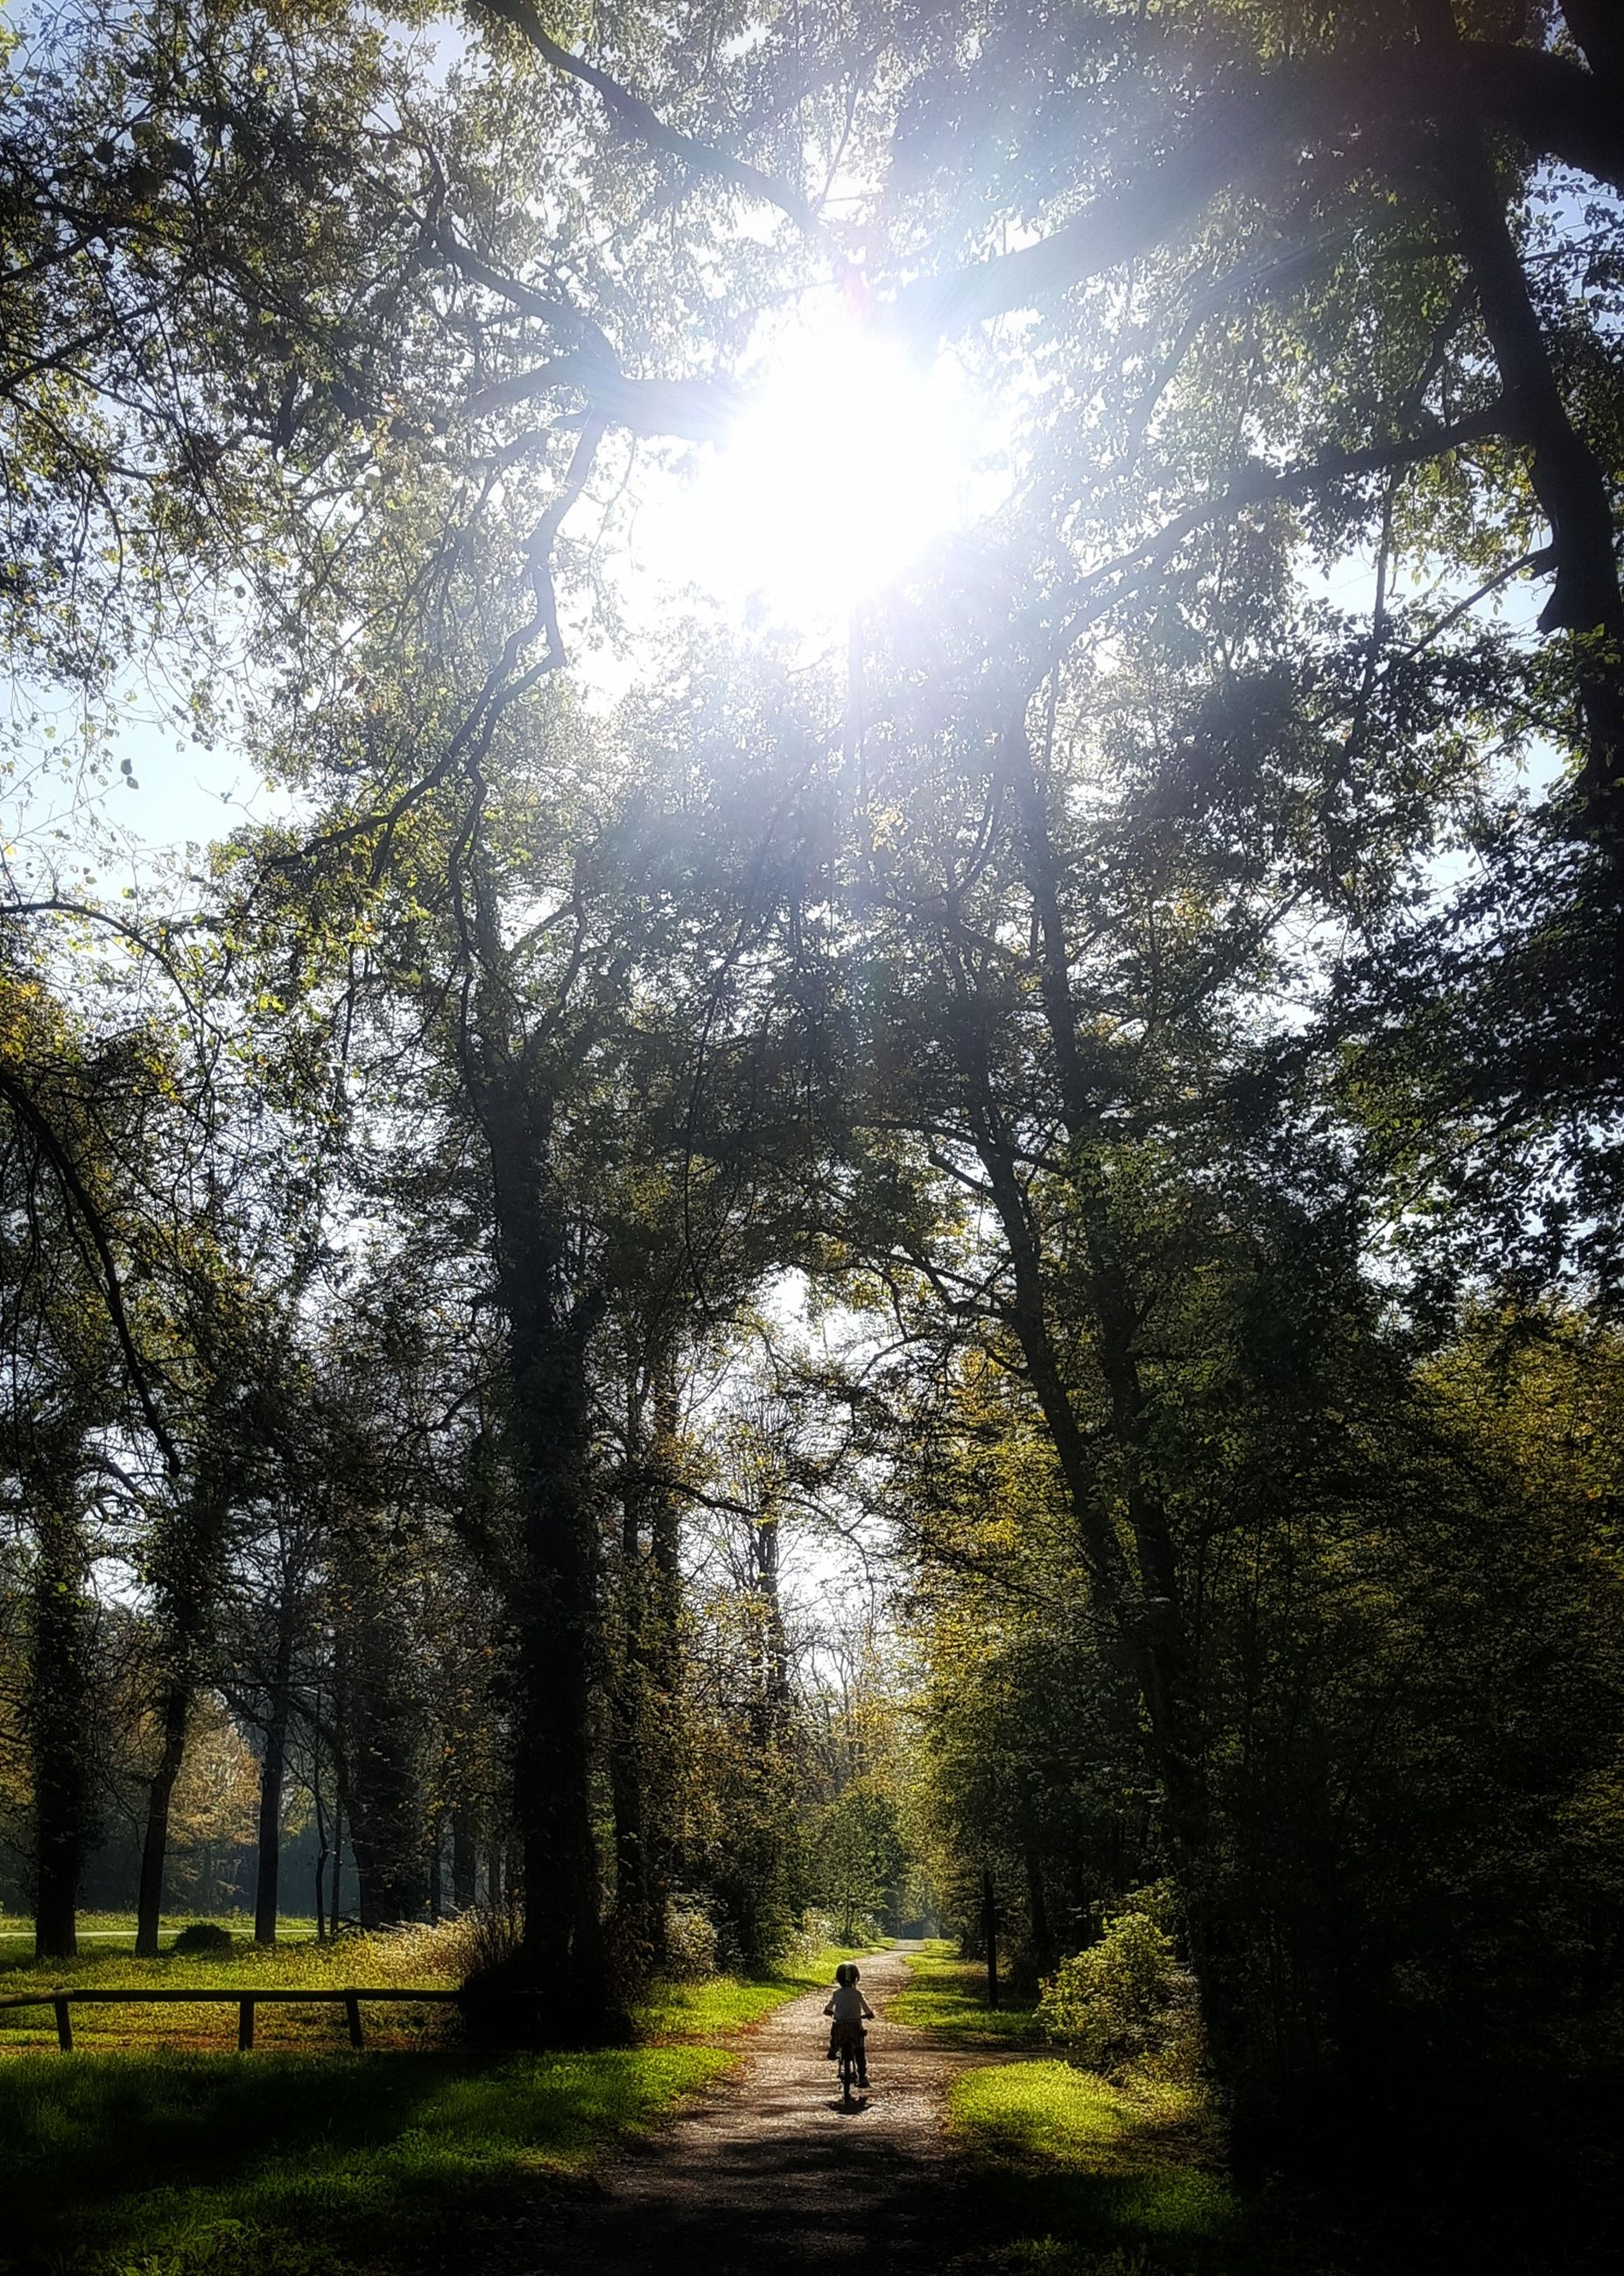 tree, sunbeam, nature, tranquility, day, sunlight, growth, tranquil scene, the way forward, forest, walking, beauty in nature, scenics, tree trunk, outdoors, real people, full length, branch, landscape, one person, sky, people